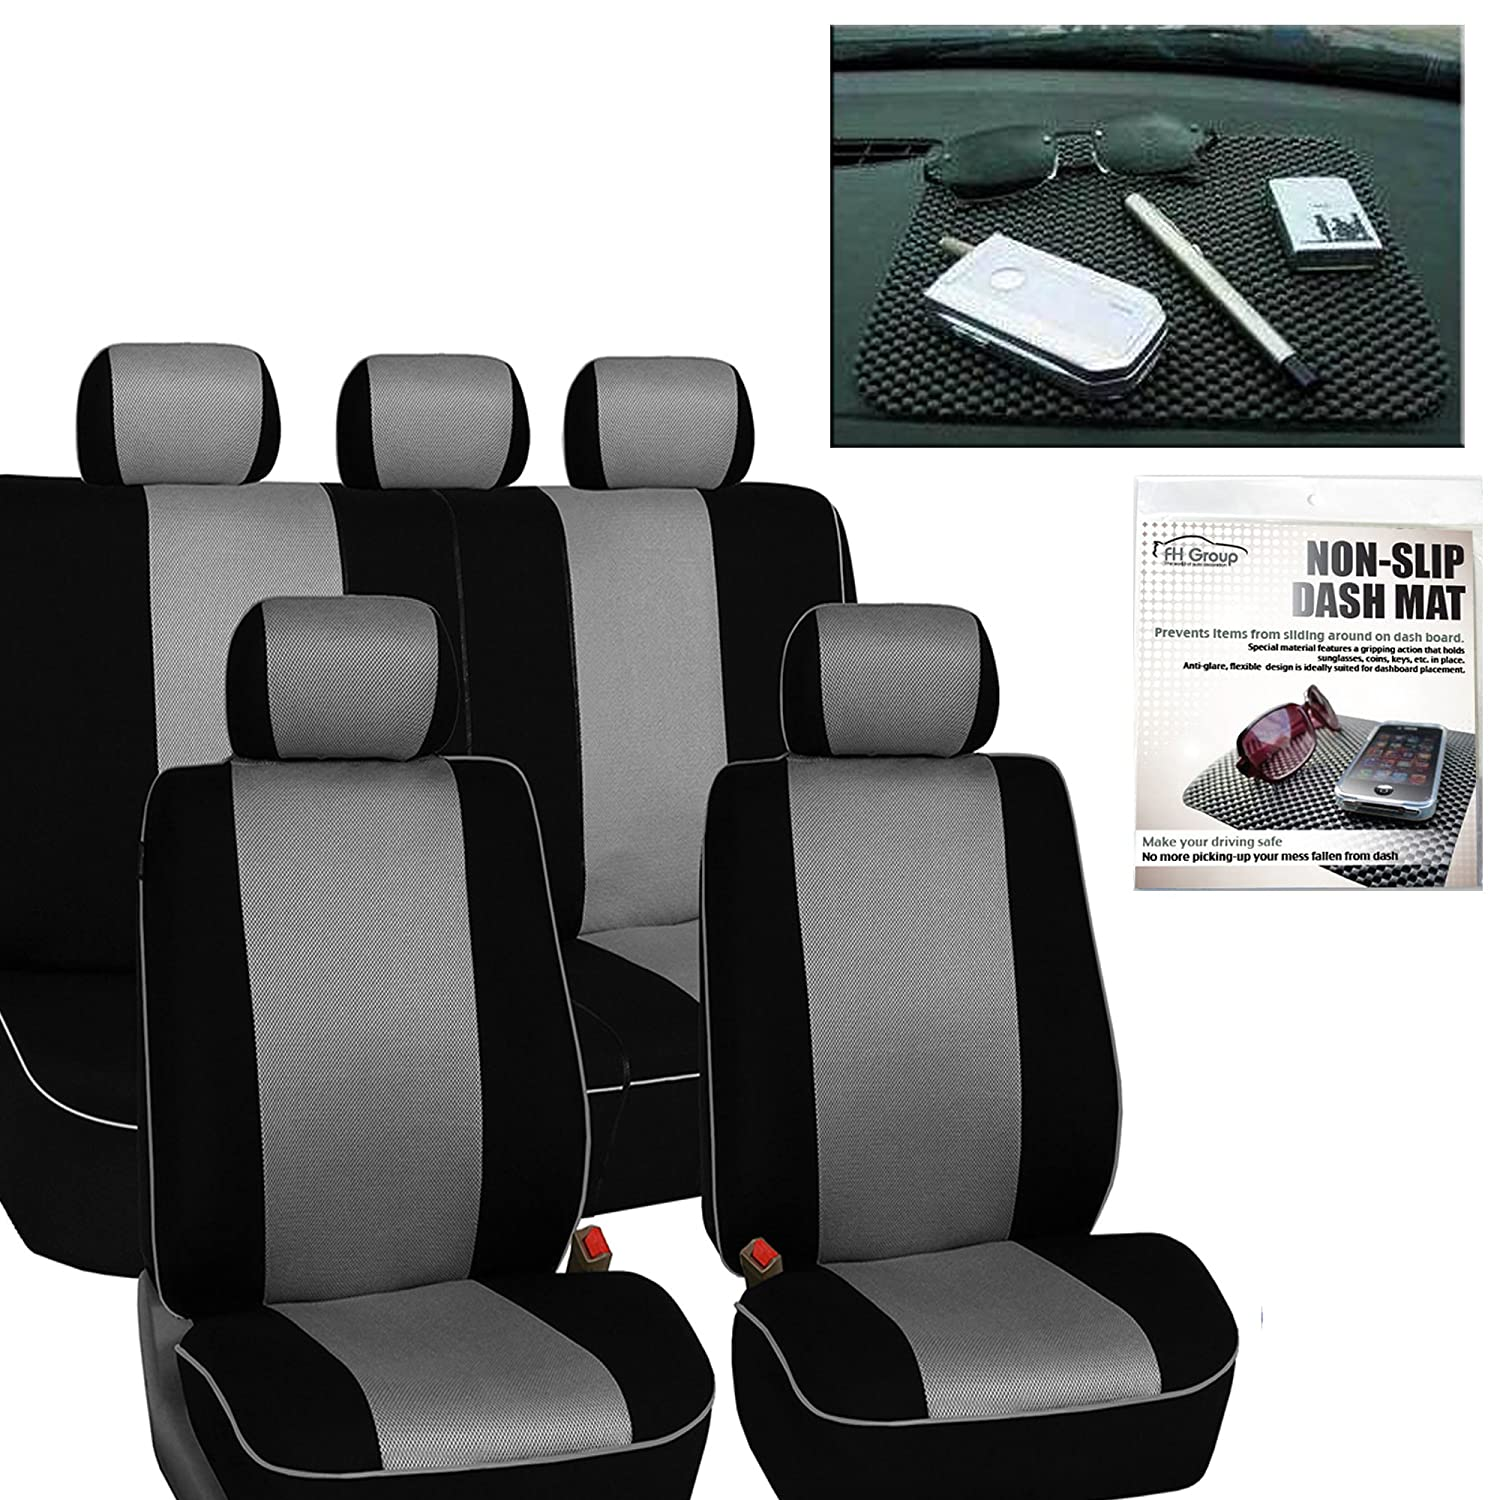 FH GROUP FH-FB063115 Full Set Sports Fabric Car Seat Covers, Airbag compatible and Split Bench with FH GROUP FH1002 Non-slip Dash Grip Pad Gray / Black- Fit Most Car, Truck, Suv, or Van